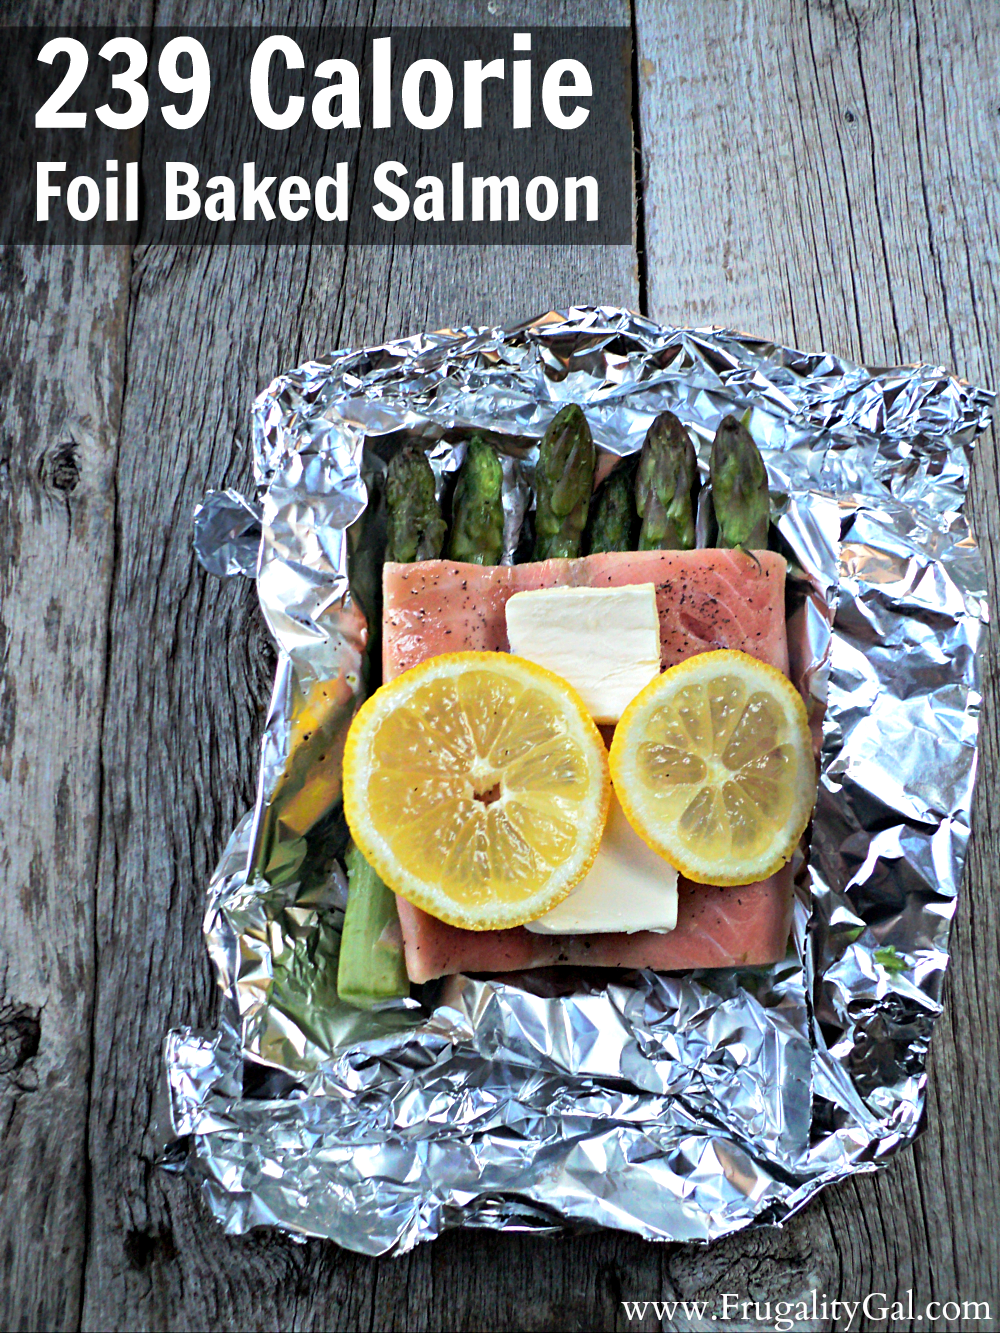 Easy 239 Calorie Baked Salmon Recipe With Asparagus The Best Part? This 30